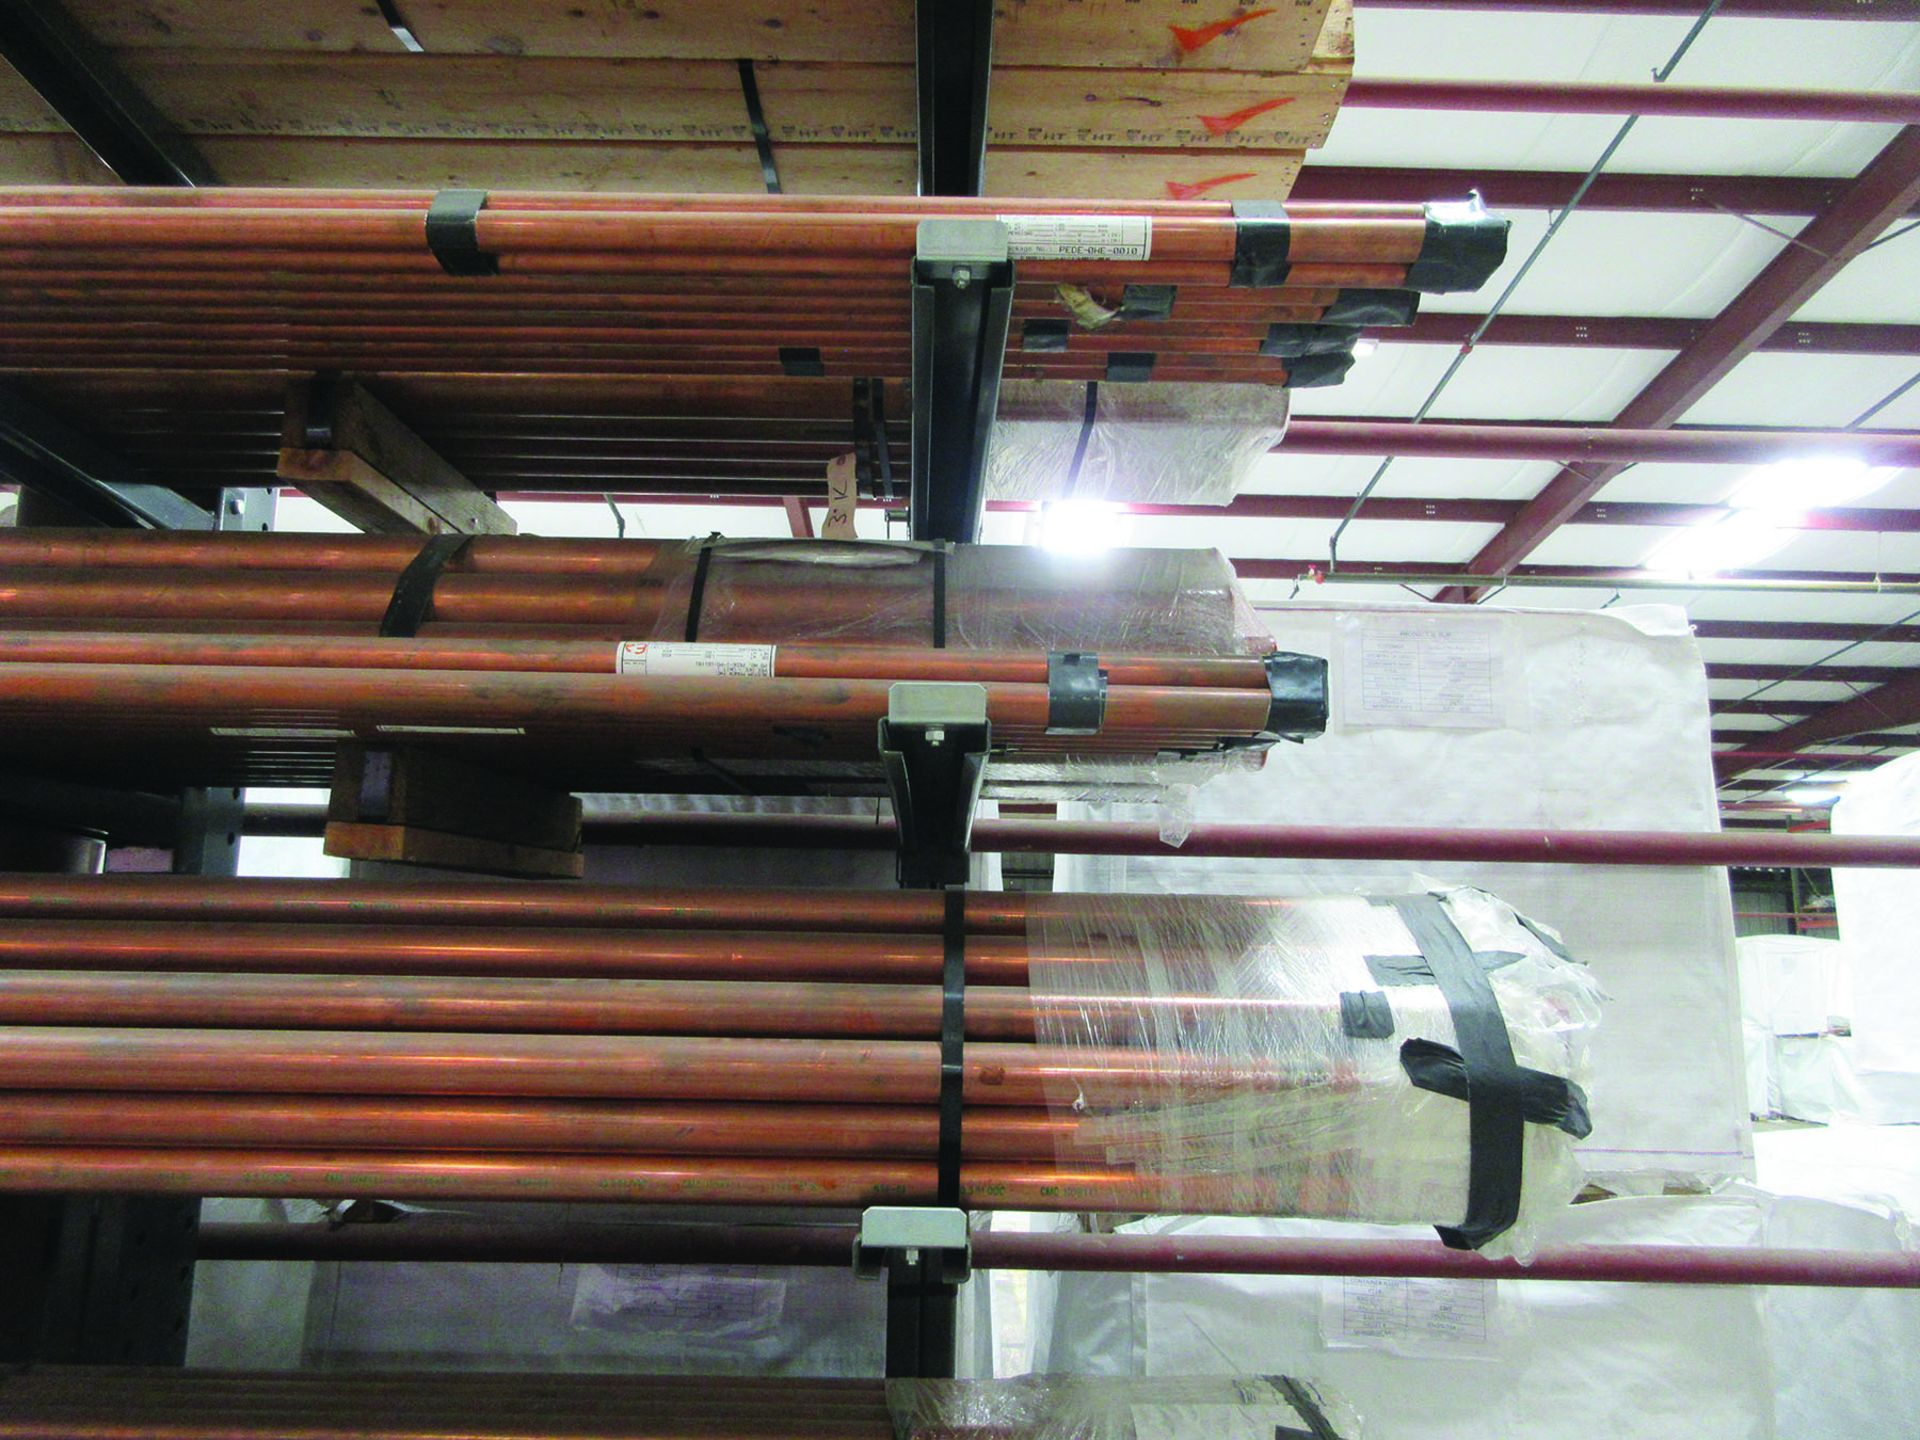 CANTILEVER RACK W/ CONTENT: 120'' X 48'' X 202'', BUNDLES OF COPPER PIPE; LARGER BUNDLES WEIGH 1, - Image 12 of 13